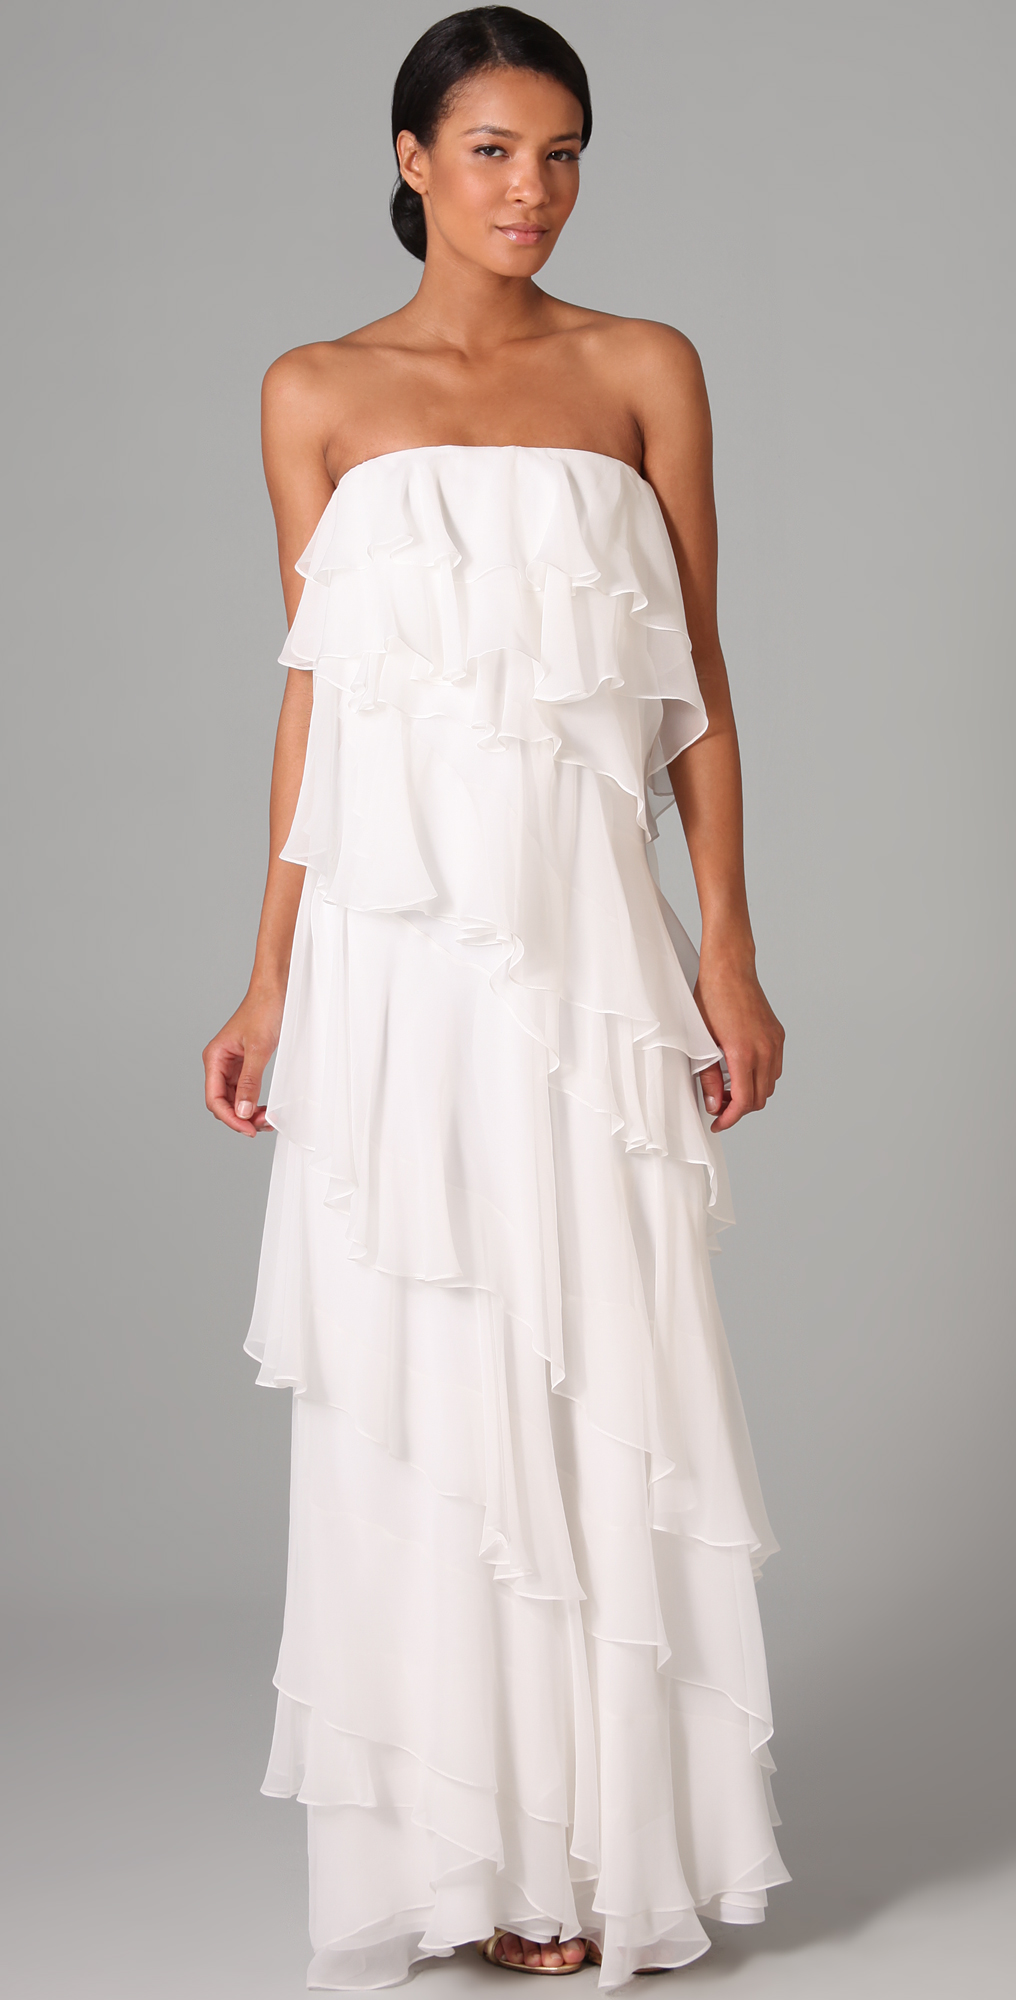 Halston Heritage Ruffle Strapless Long Dress - SHOPBOP